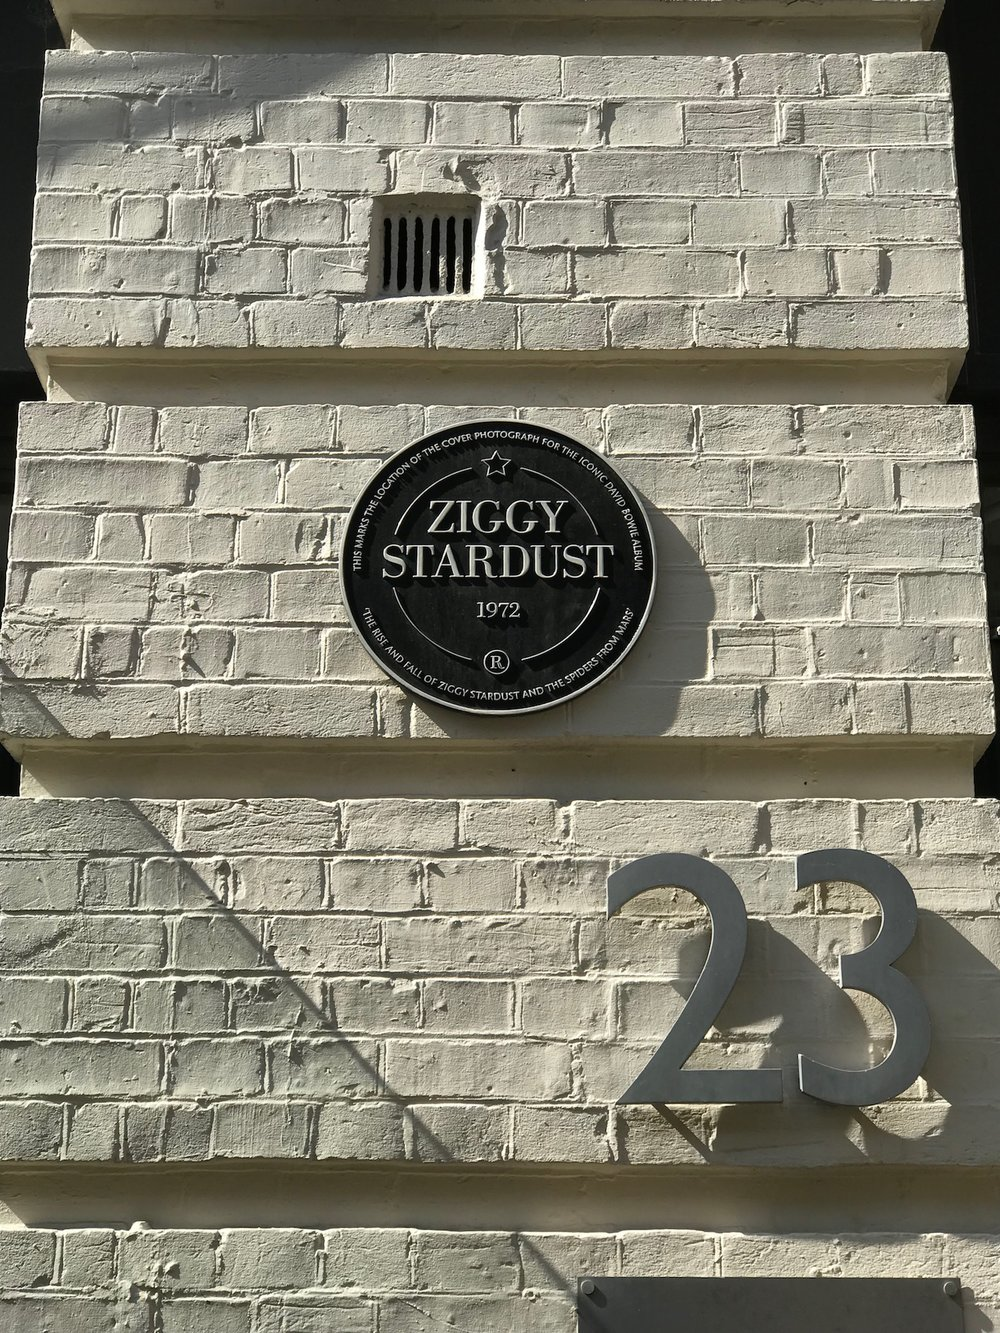 Ziggy Stardust 1972 Site of Album Cover Shoot. .jpg